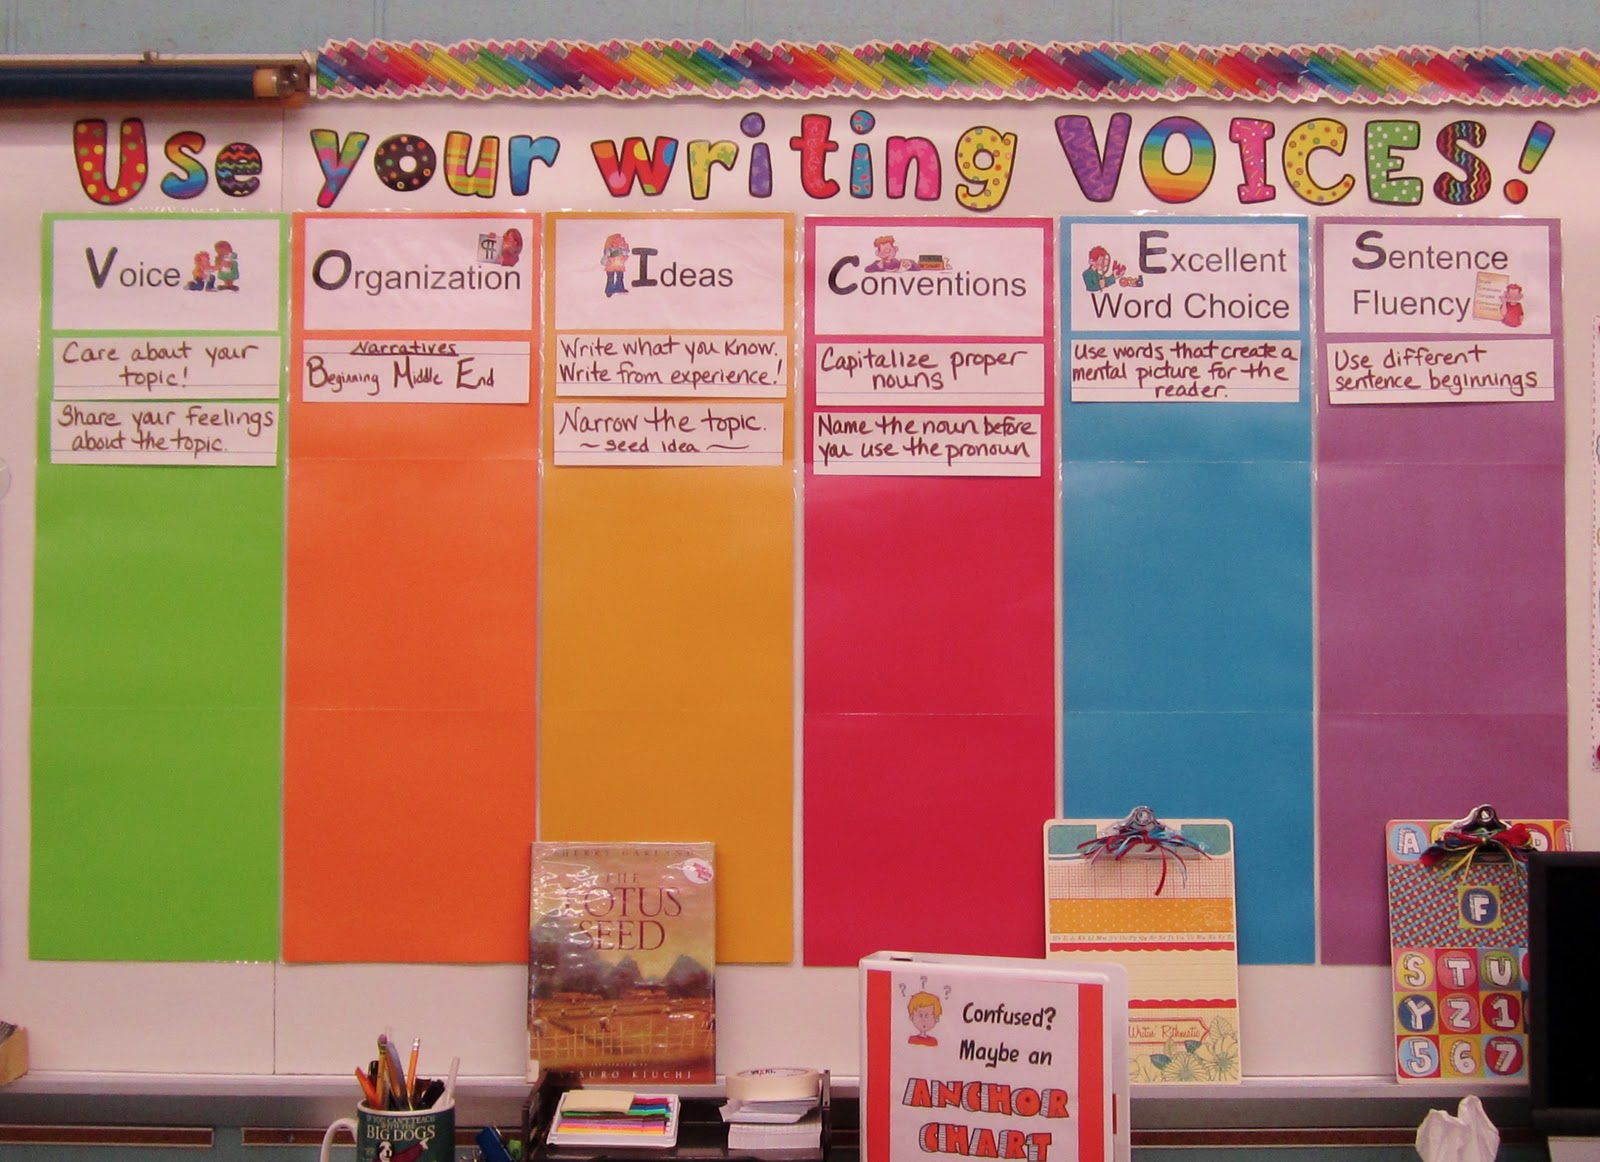 voice in essay writing A few weeks ago, i read a creative writing hub which started in the voice of a young lad, making extensive use of boyish slang a couple of paragraphs in, the writer used some quite sophisticated words and it really jarred - it destroyed the mood of the piece for me.